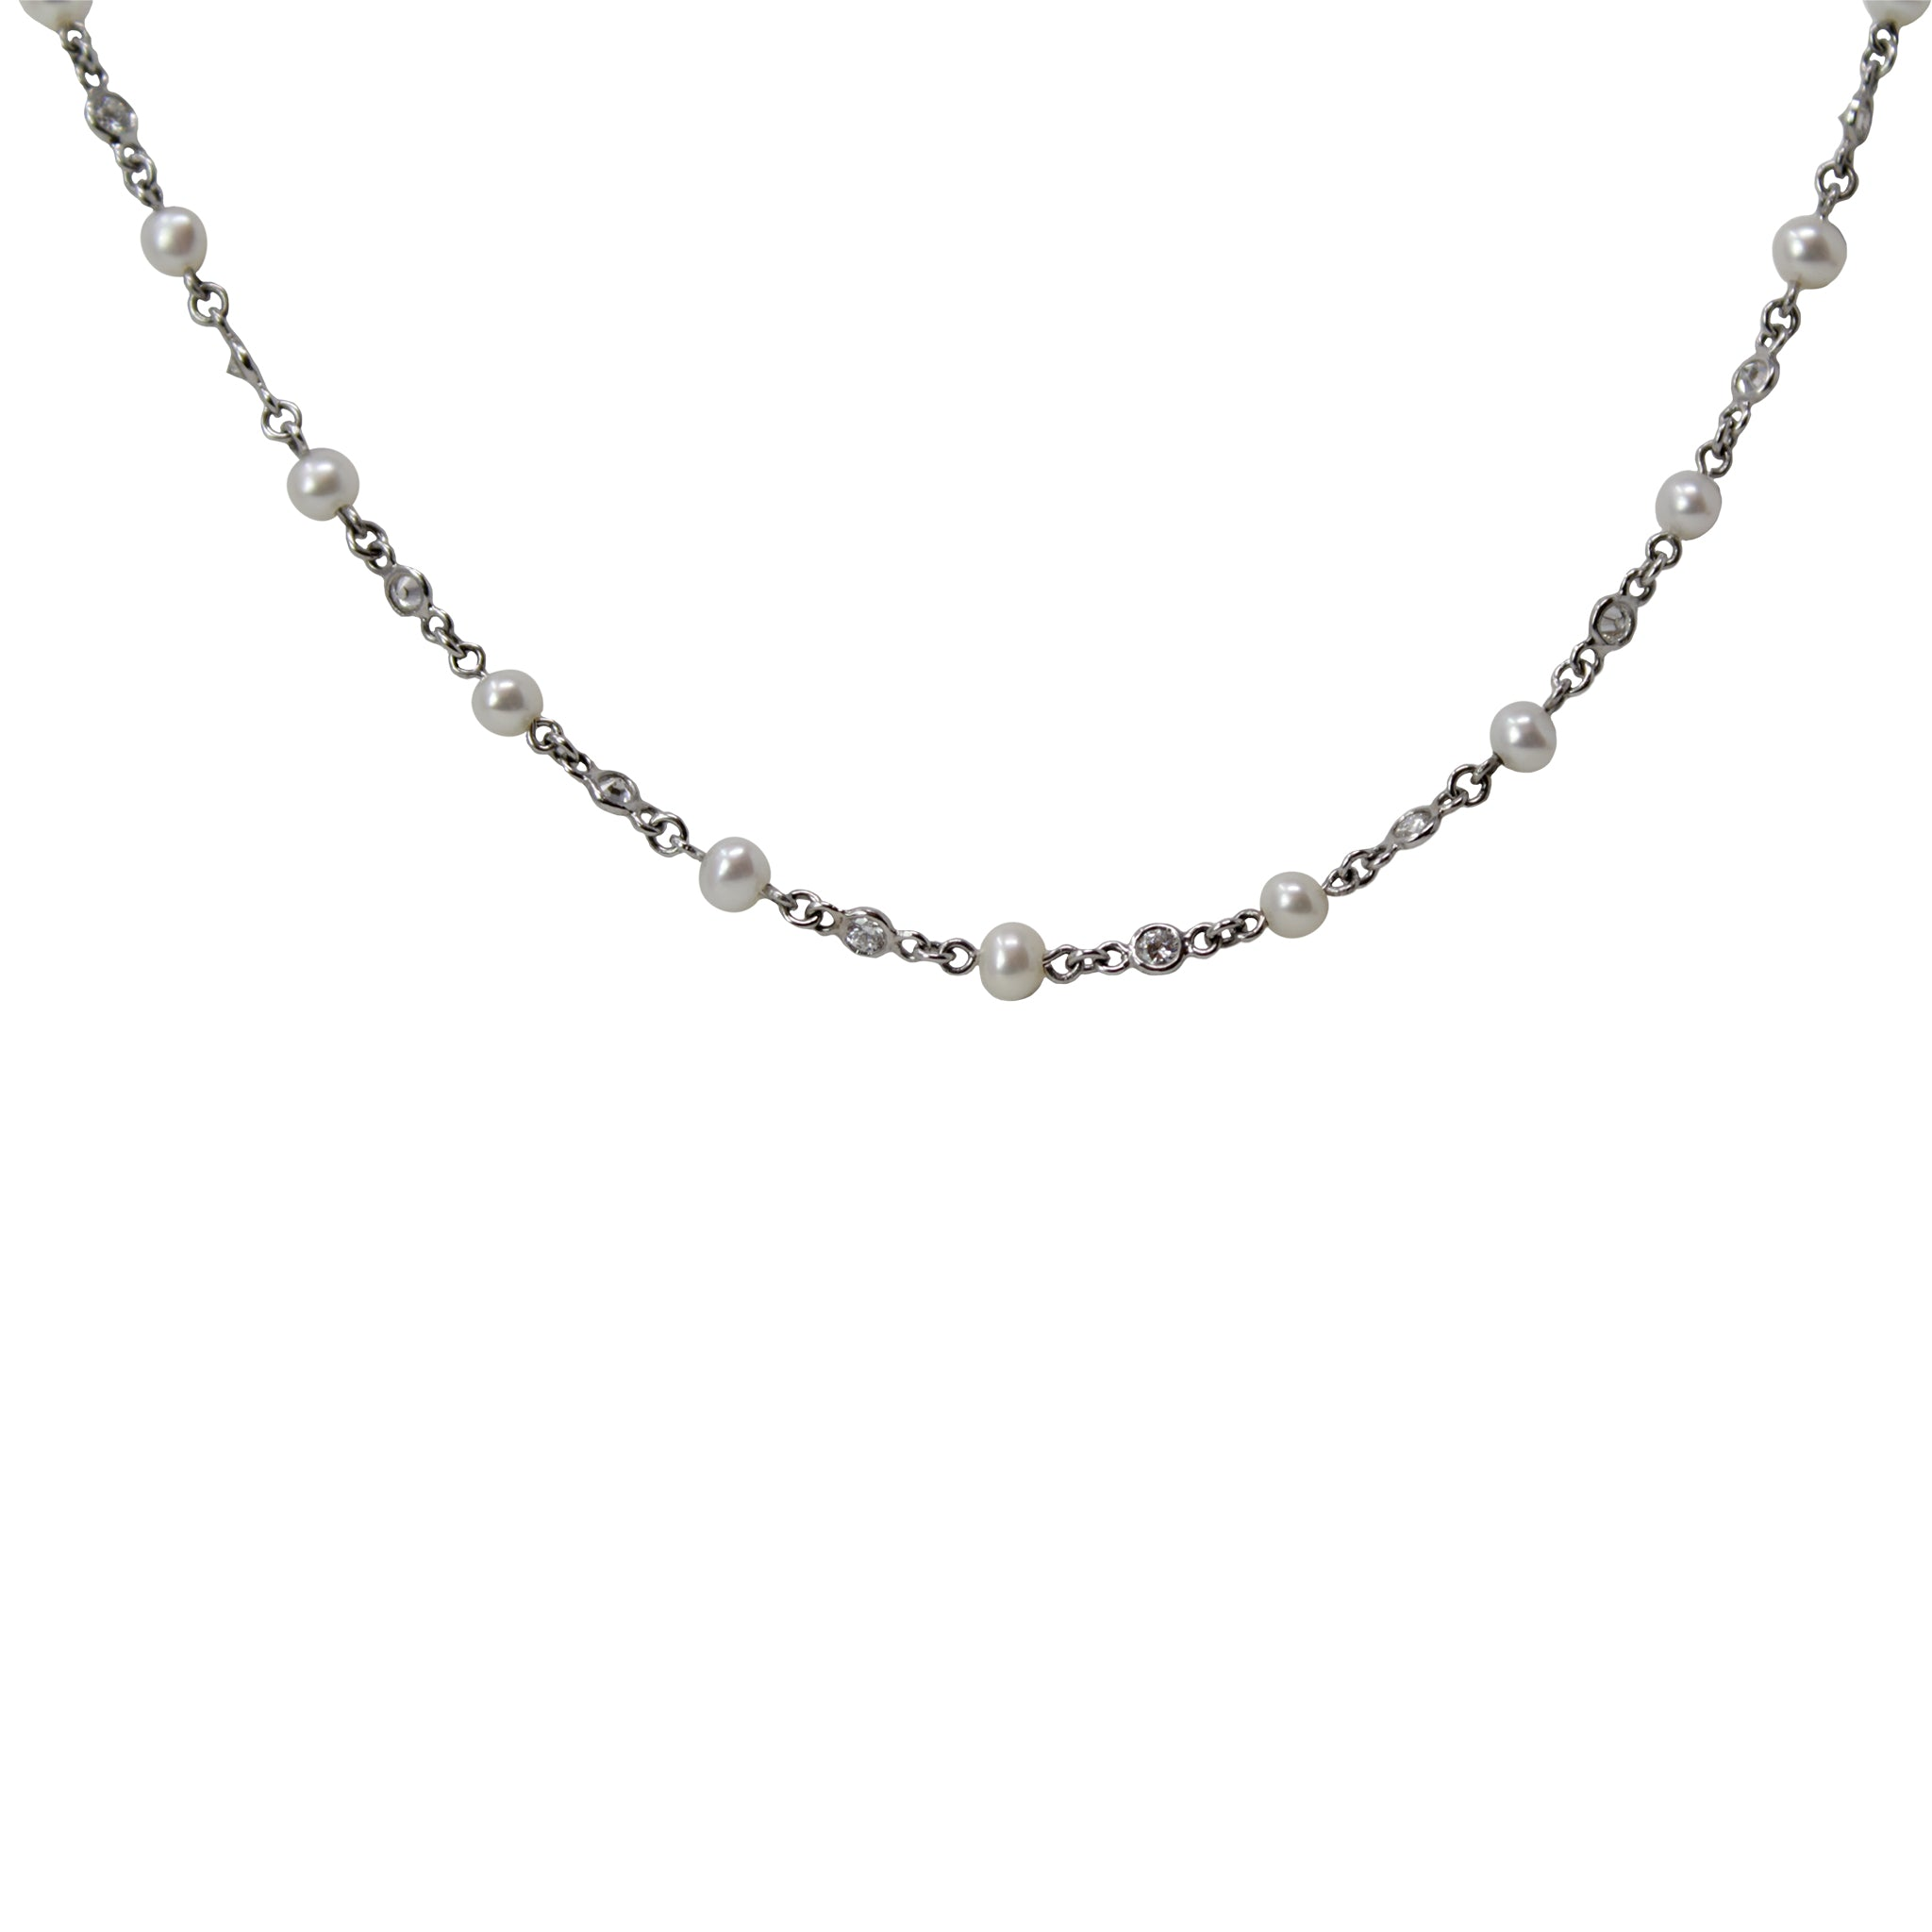 Diamond Strand - Platinum Chain Necklace With Small Diamonds And Cultured Pearls